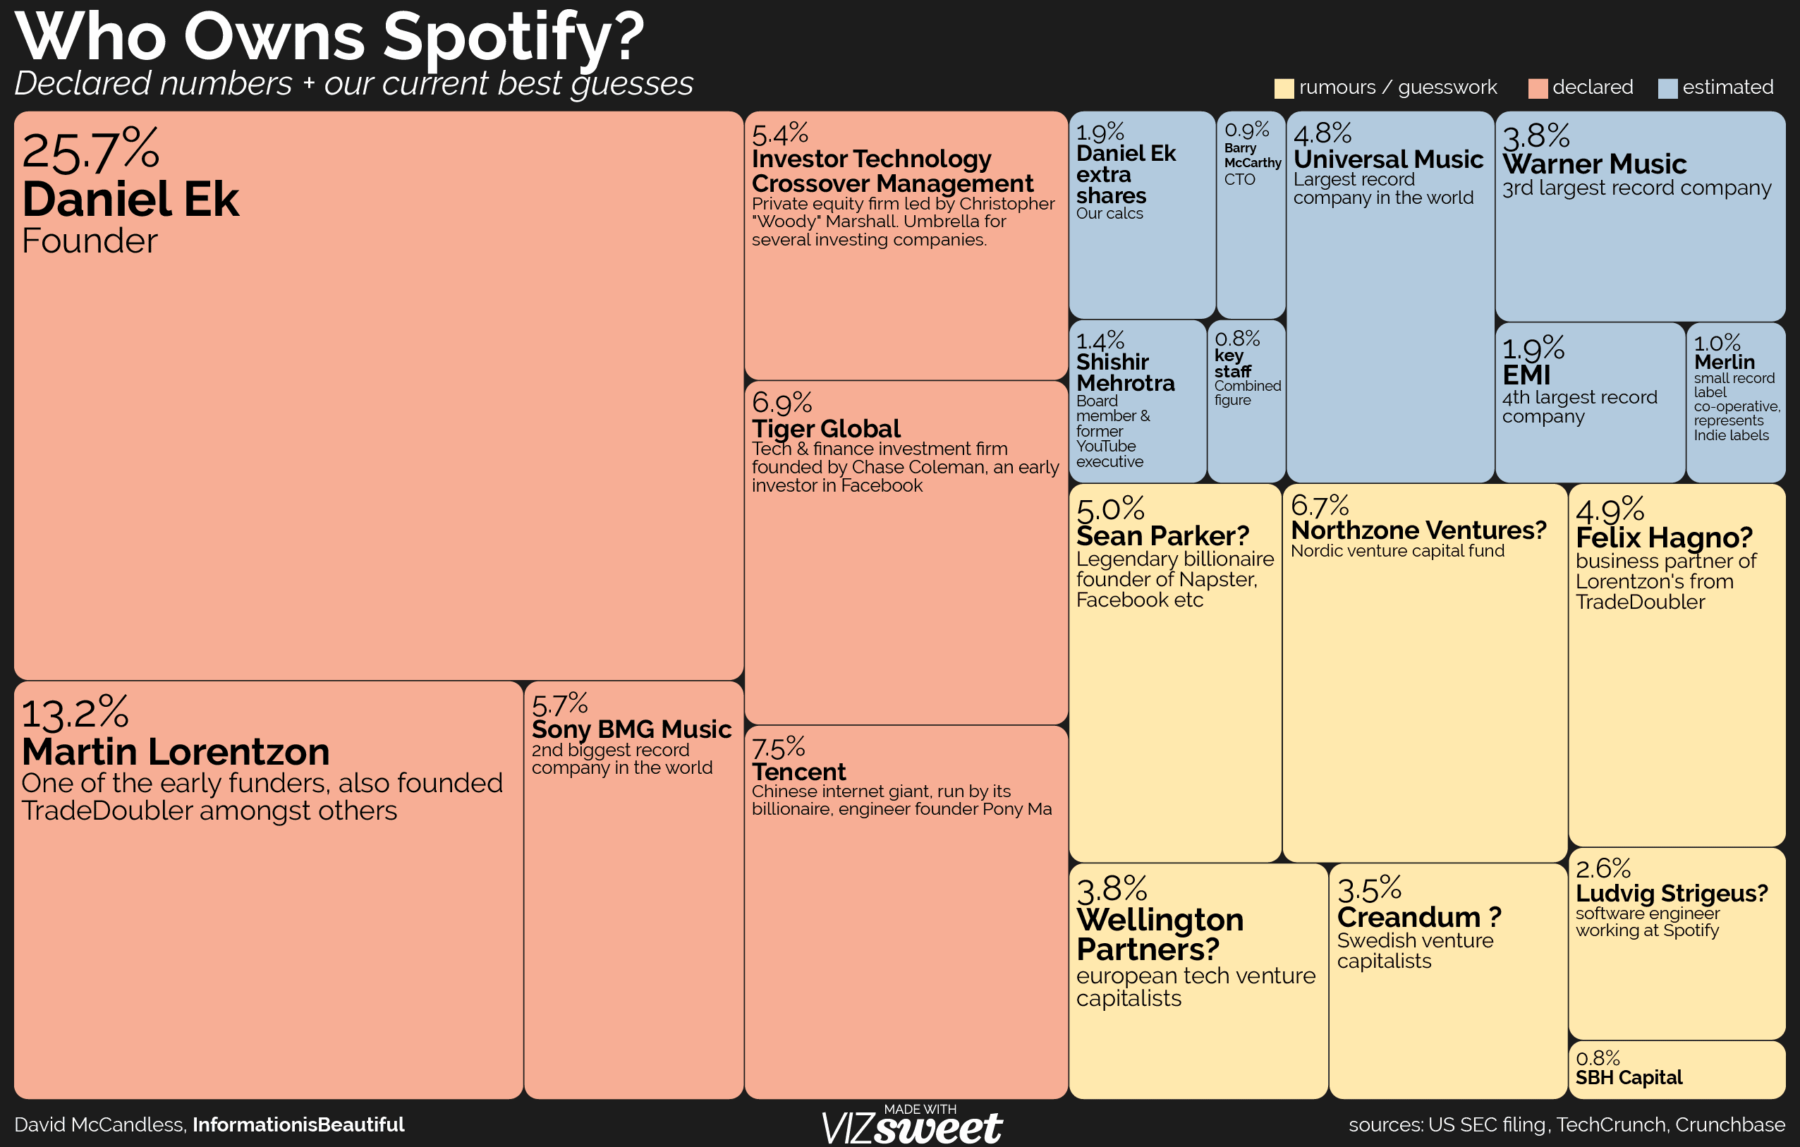 Who Owns Spotify? - The Big Picture